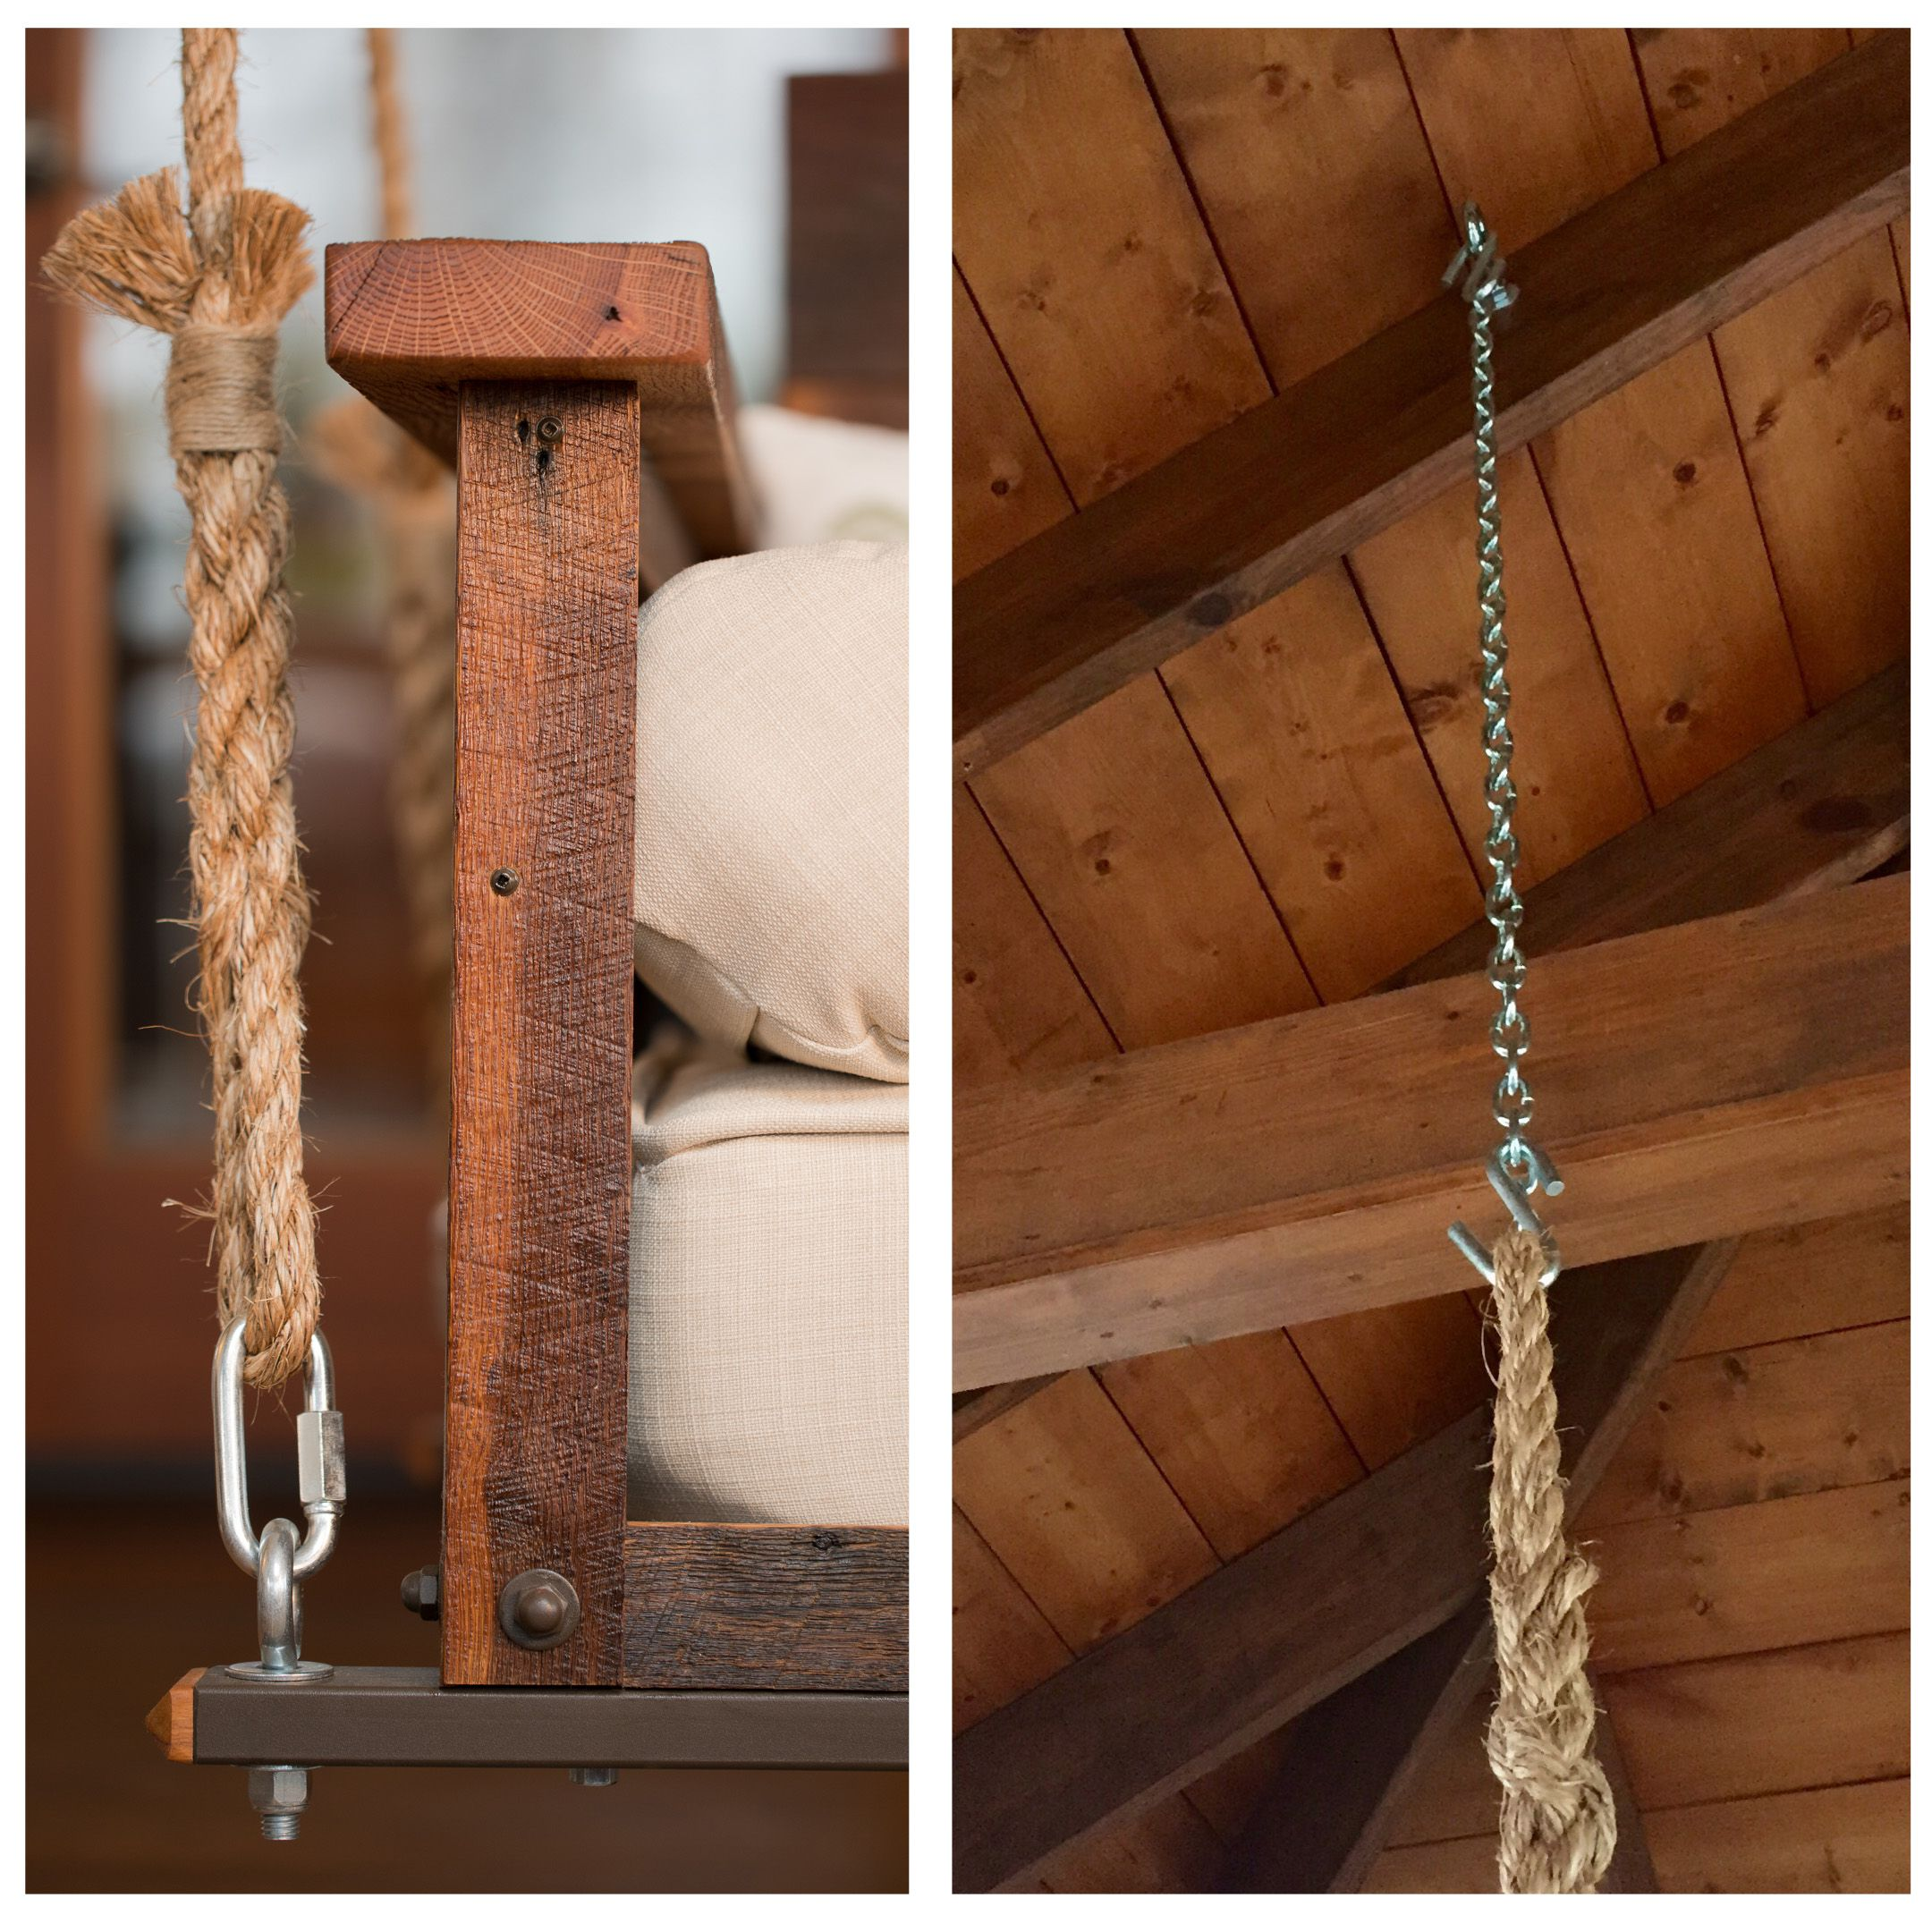 Swing Bed Hanging Rope The Porch Company In 2020 Diy Porch Swing Bed Hanging Porch Swing Bed Bed Swing